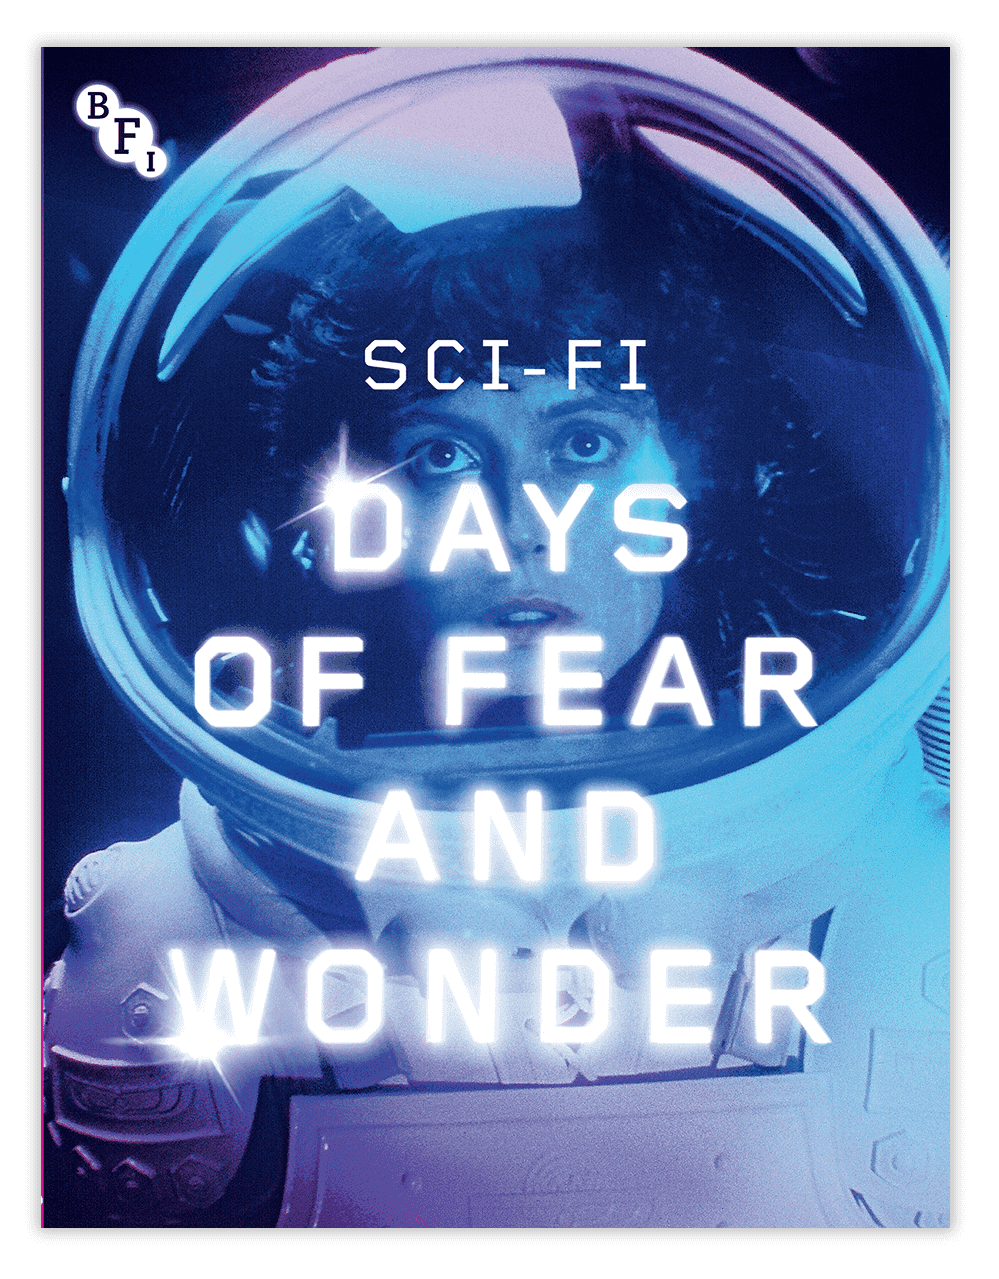 Sci-Fi: Days of Fear and Wonder - A BFI Compendium